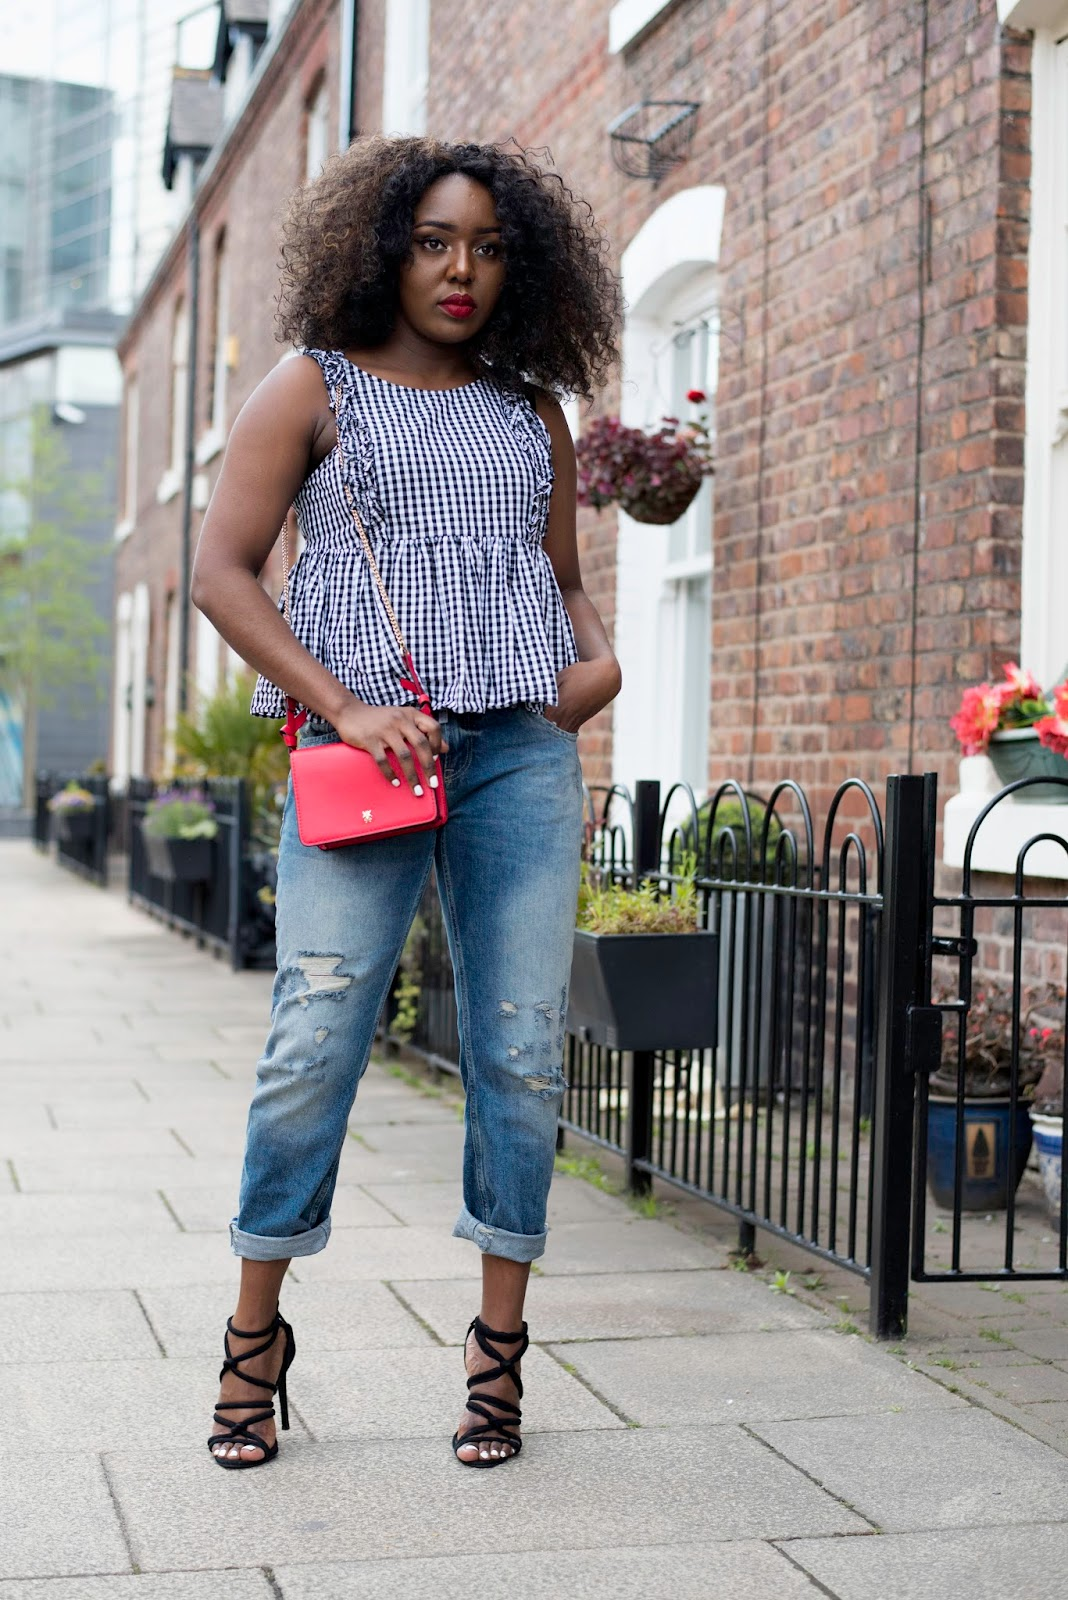 Stephylately is styling a Zara gingham Top